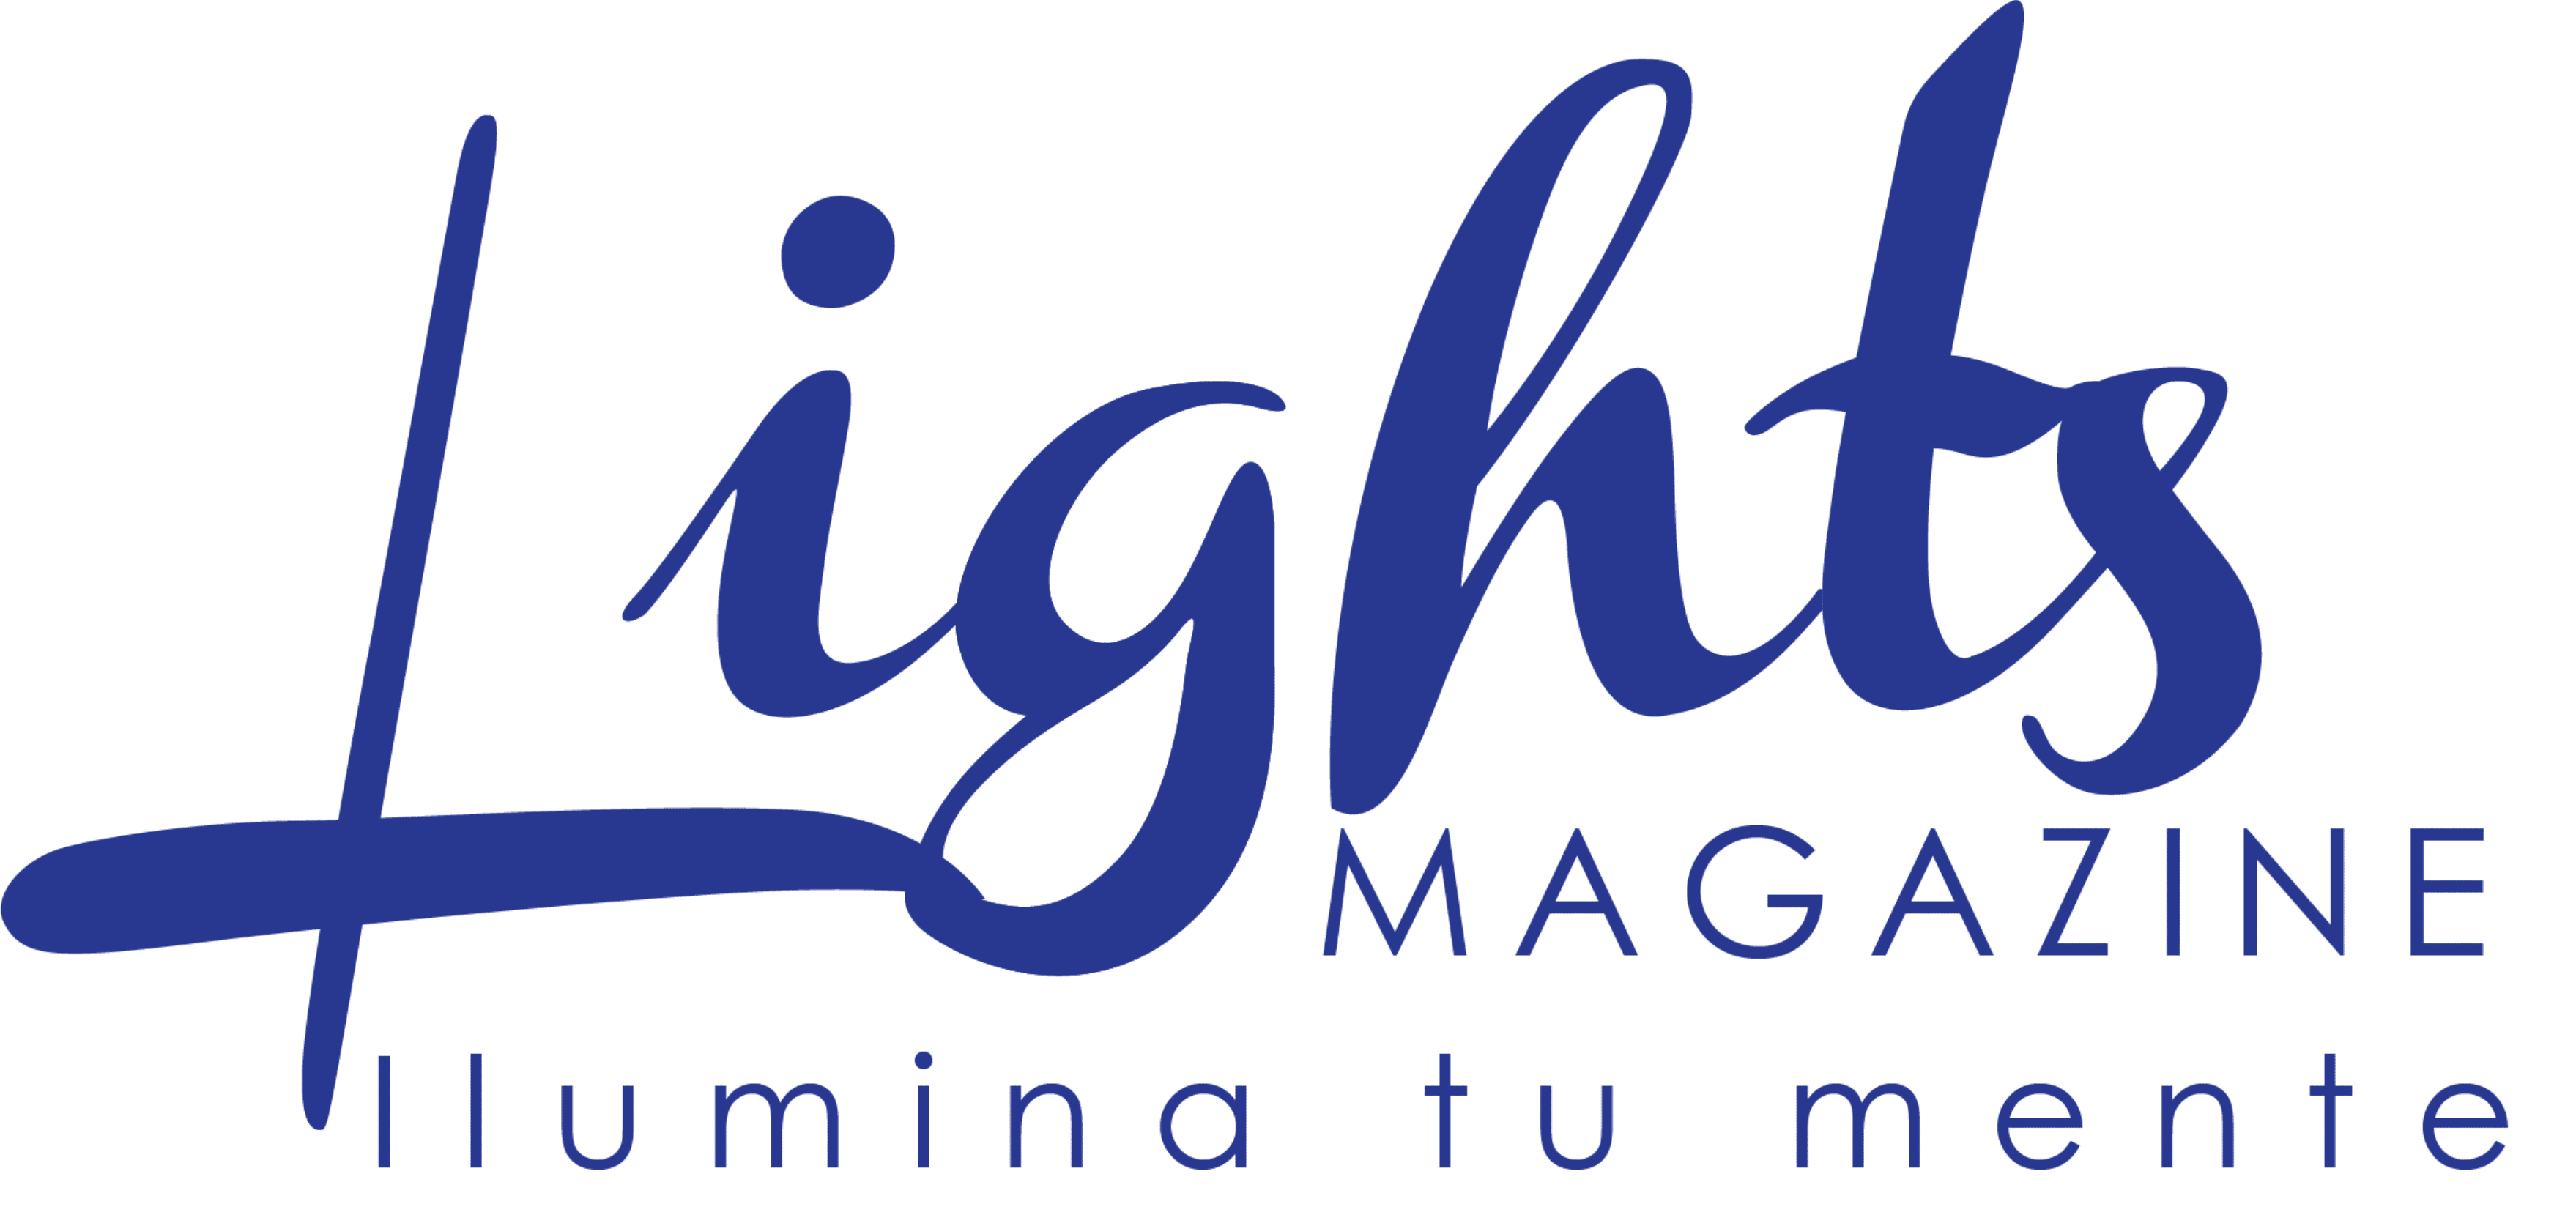 Lights Magazine TV